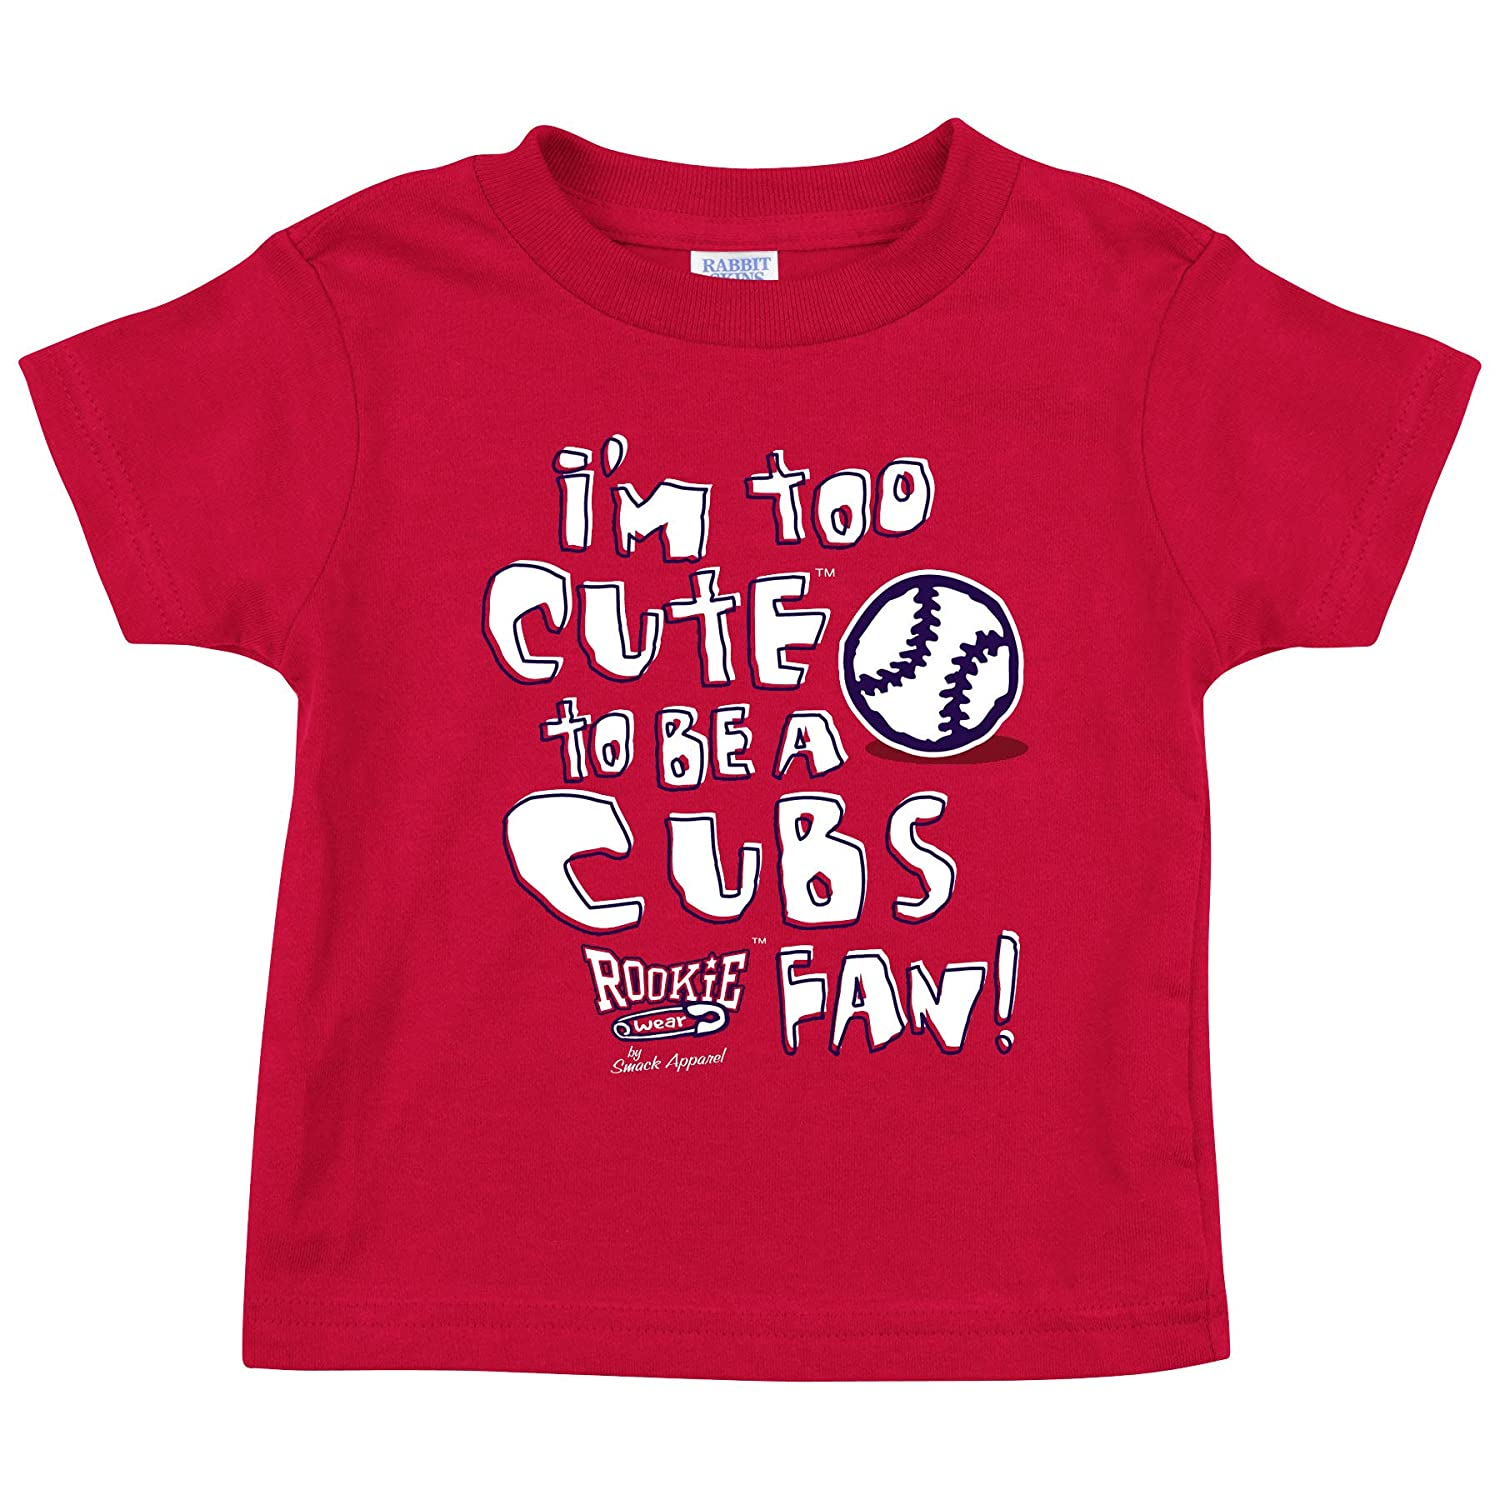 Rookie Wear By Smack Apparel St Louis Baseball Fans 2T-4T or Toddler Tee Im Too Cute Onesie NB-18M